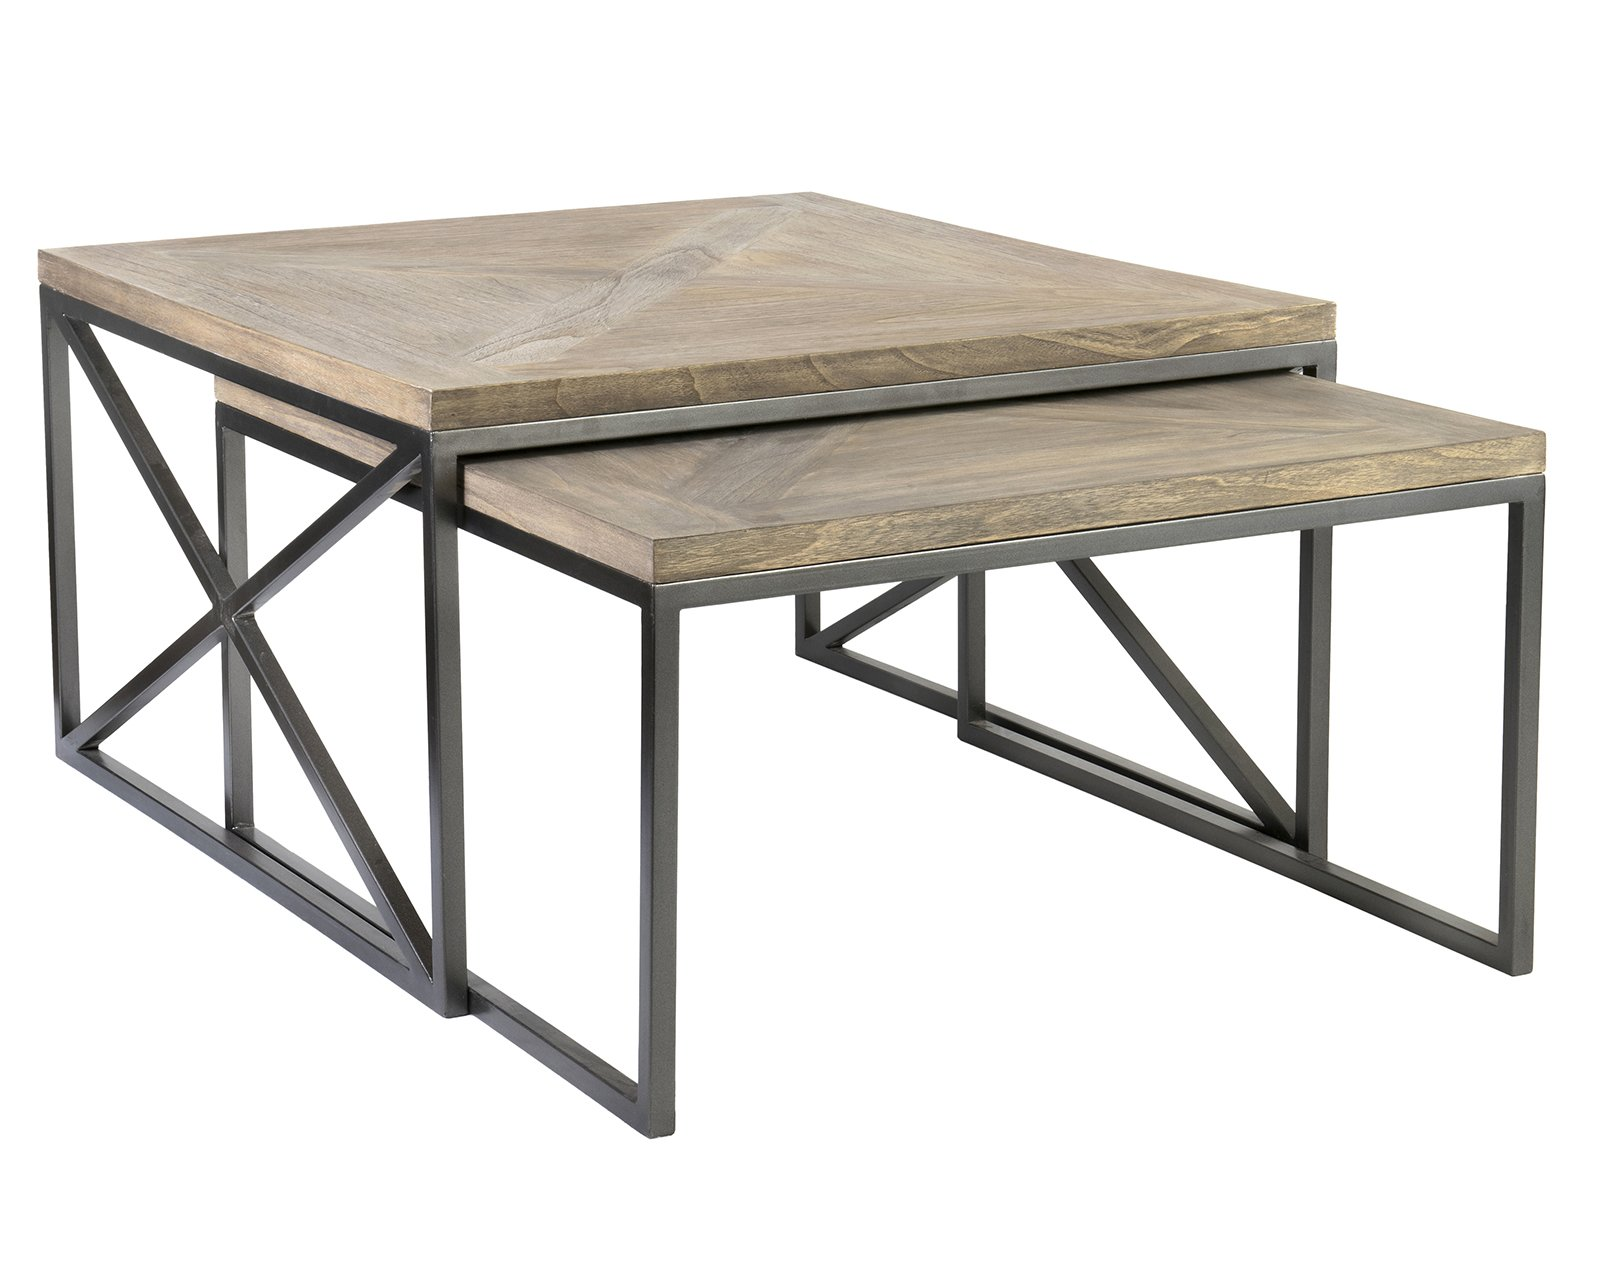 "East at Main Wilcox Teak Rectangular Coffee Table, 35""x31.5""x19"" - This beautiful piece is made of teak. This will make a fine addition to any space. Satisfaction guaranteed - each of Our products Comes with a 1 year manufacturer's warranty. We stand by Our Quality. Easy care - clean with a soft, dry cloth. - living-room-furniture, living-room, coffee-tables - 71%2B6FjQj7kL -"